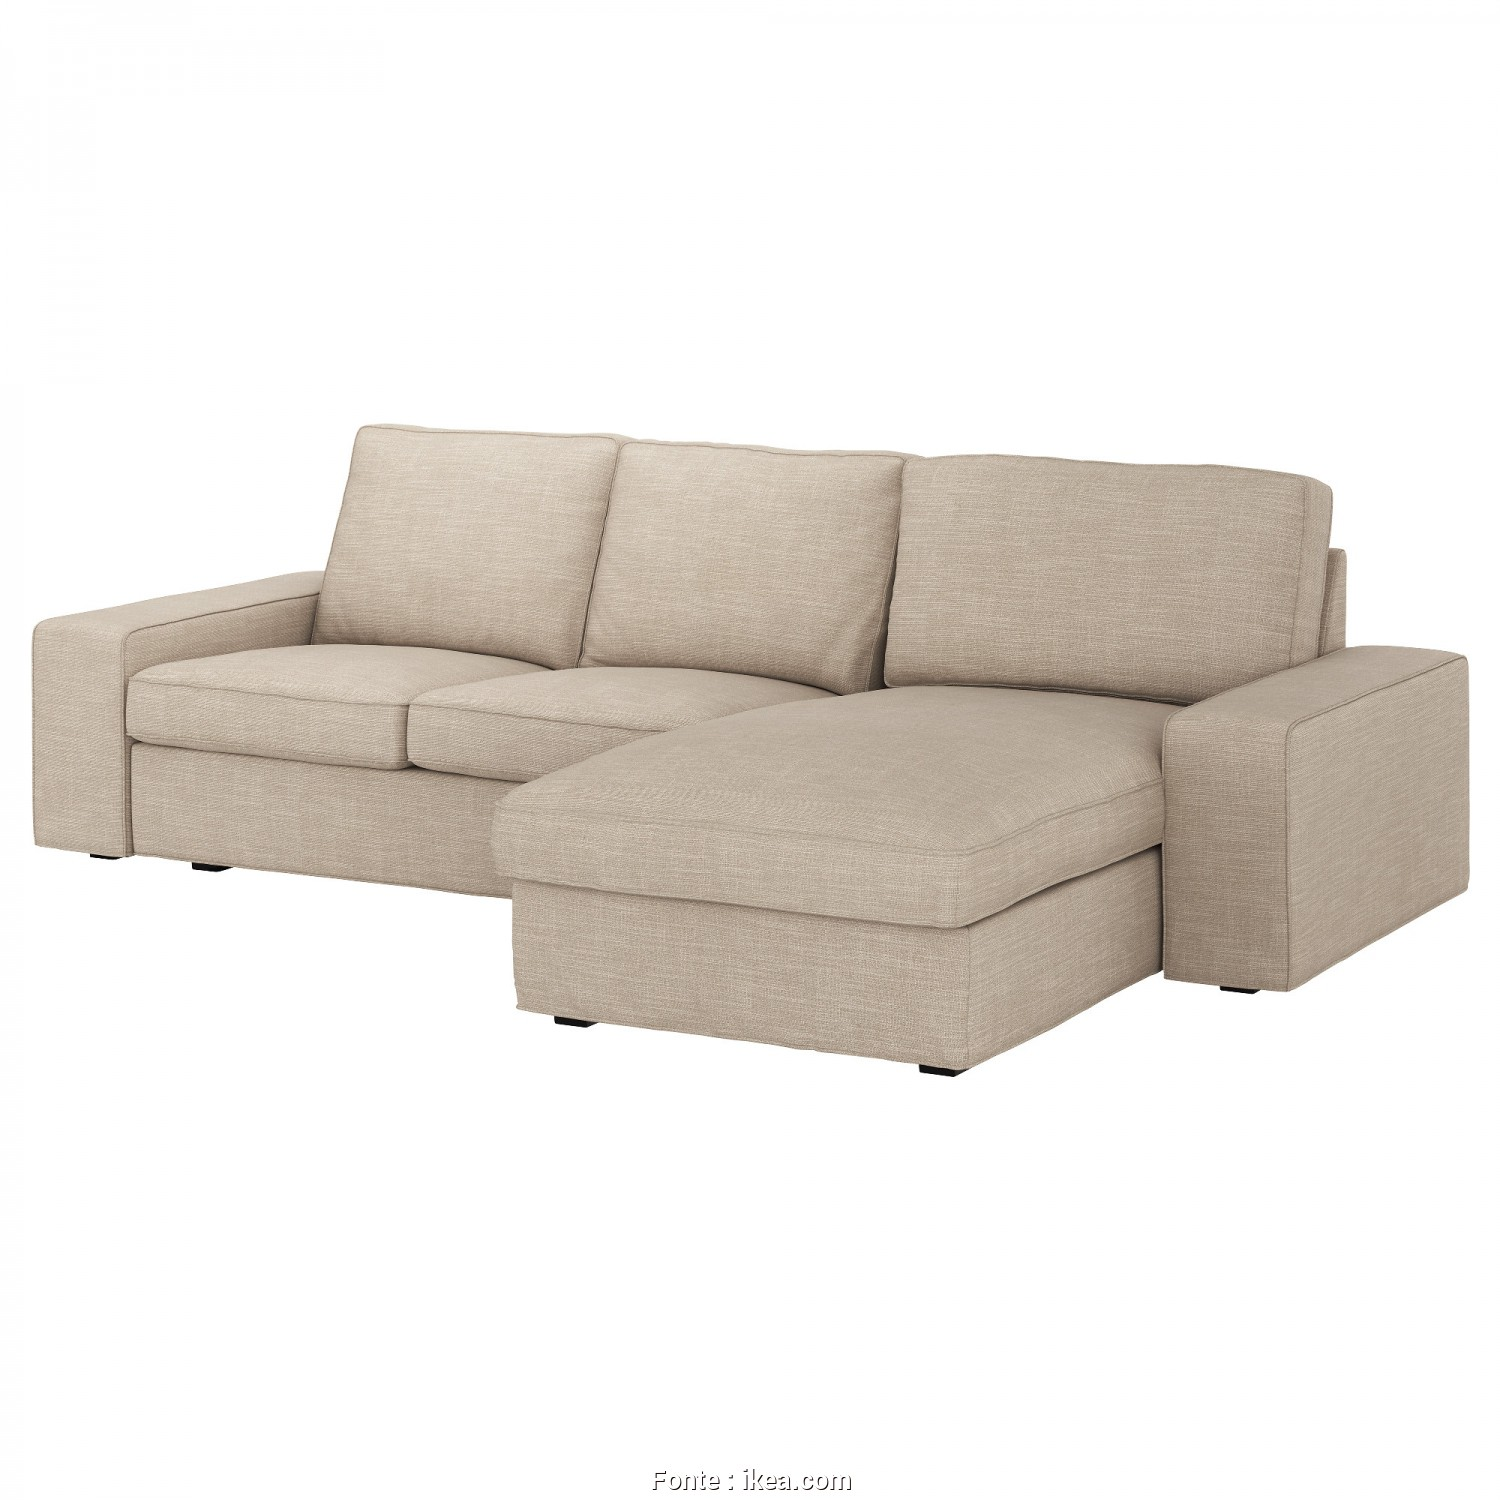 Ikea Klippan 3 Seater Sofa Dimensions, Bellissima IKEA KIVIK 3-Seat Sofa 10 Year Guarantee. Read About, Terms In The